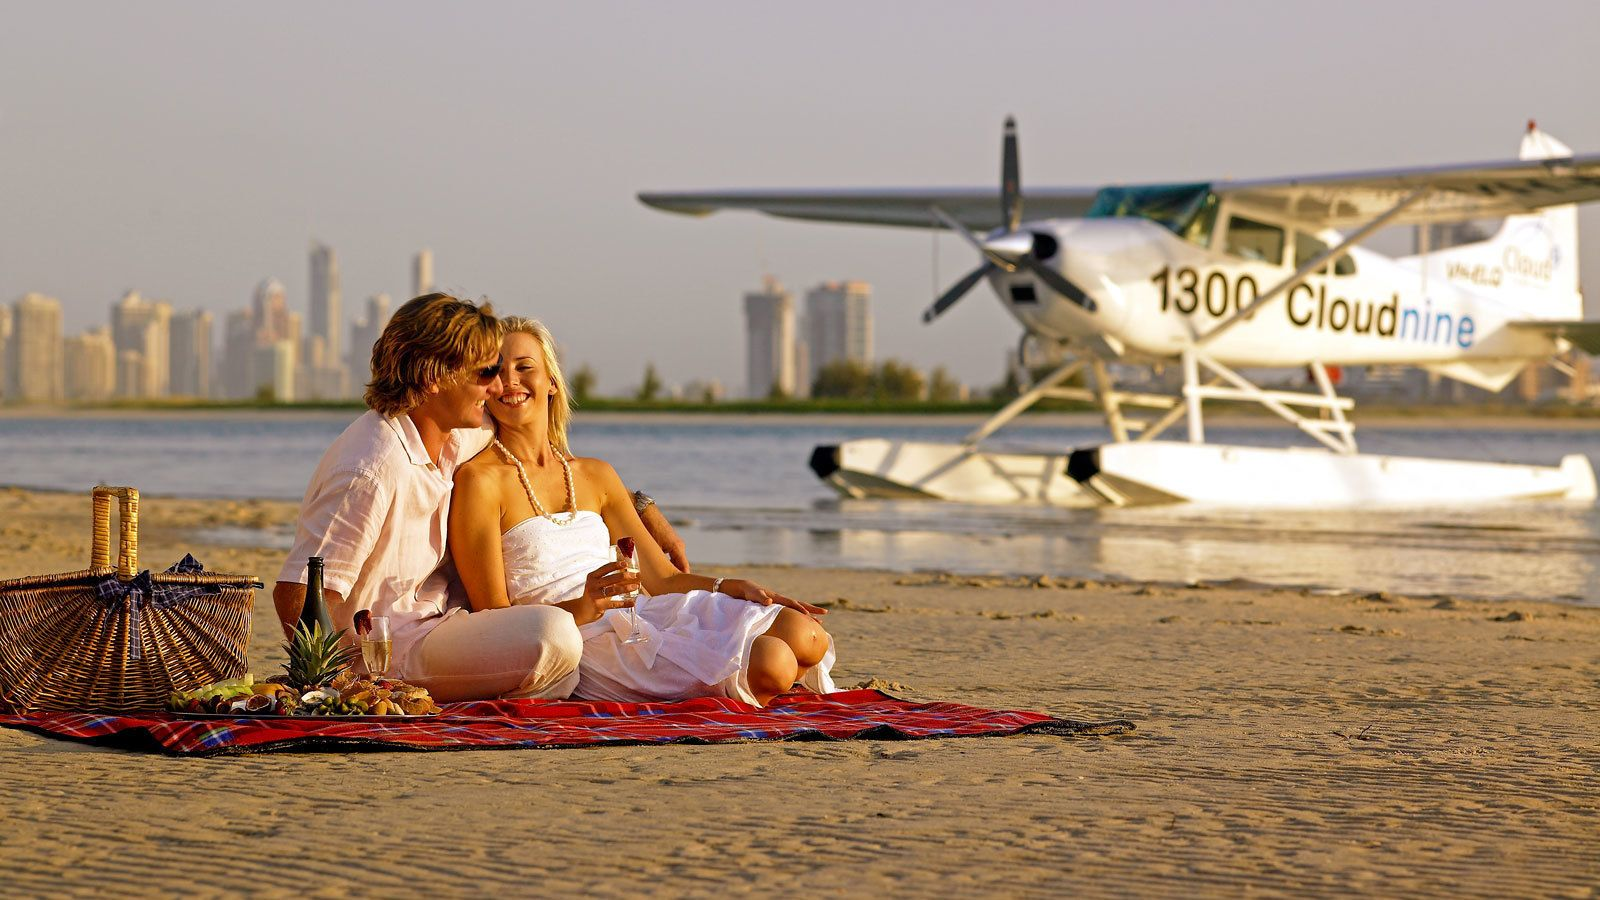 a romantic picnic at the beachside near the seaplane in Australia